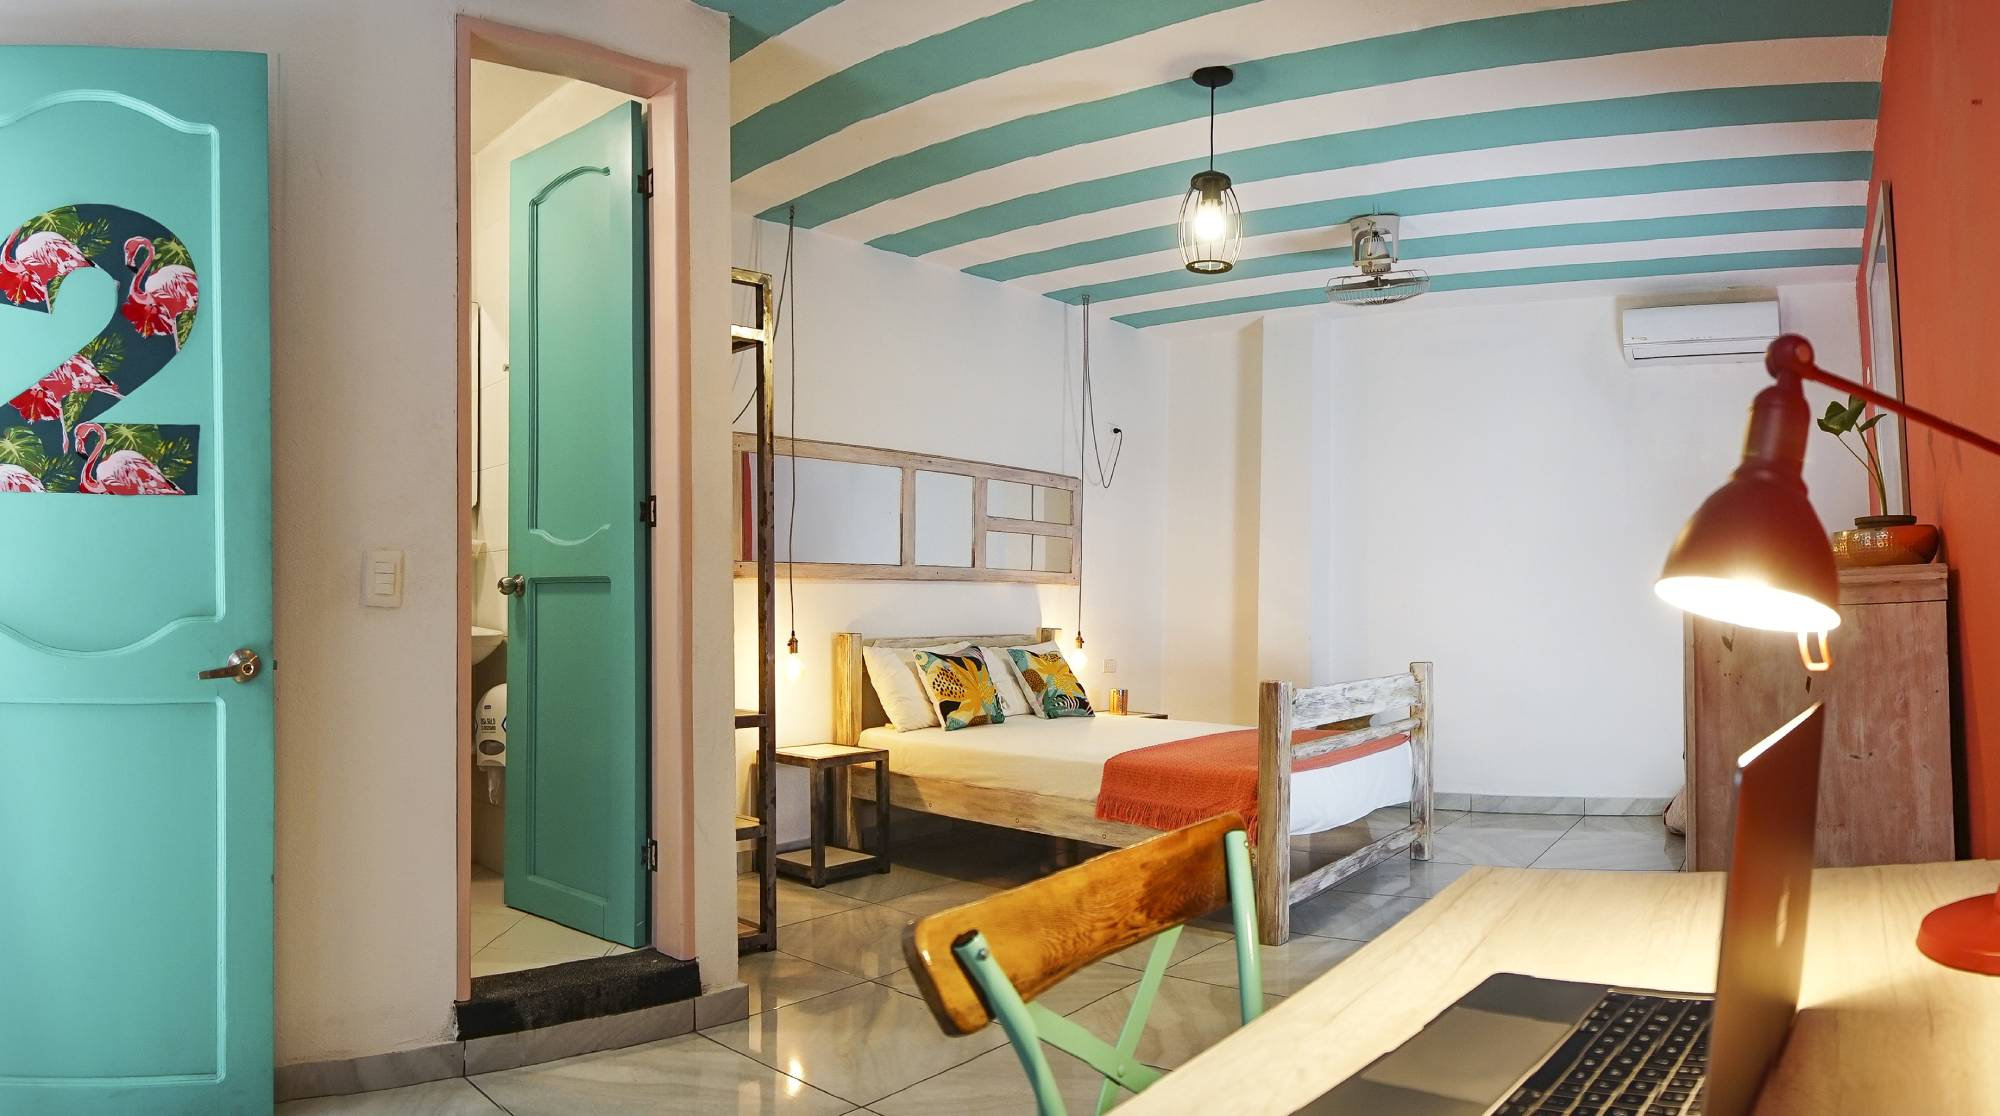 Double Room with private bathroom at Flaingo Coworking & Coliving